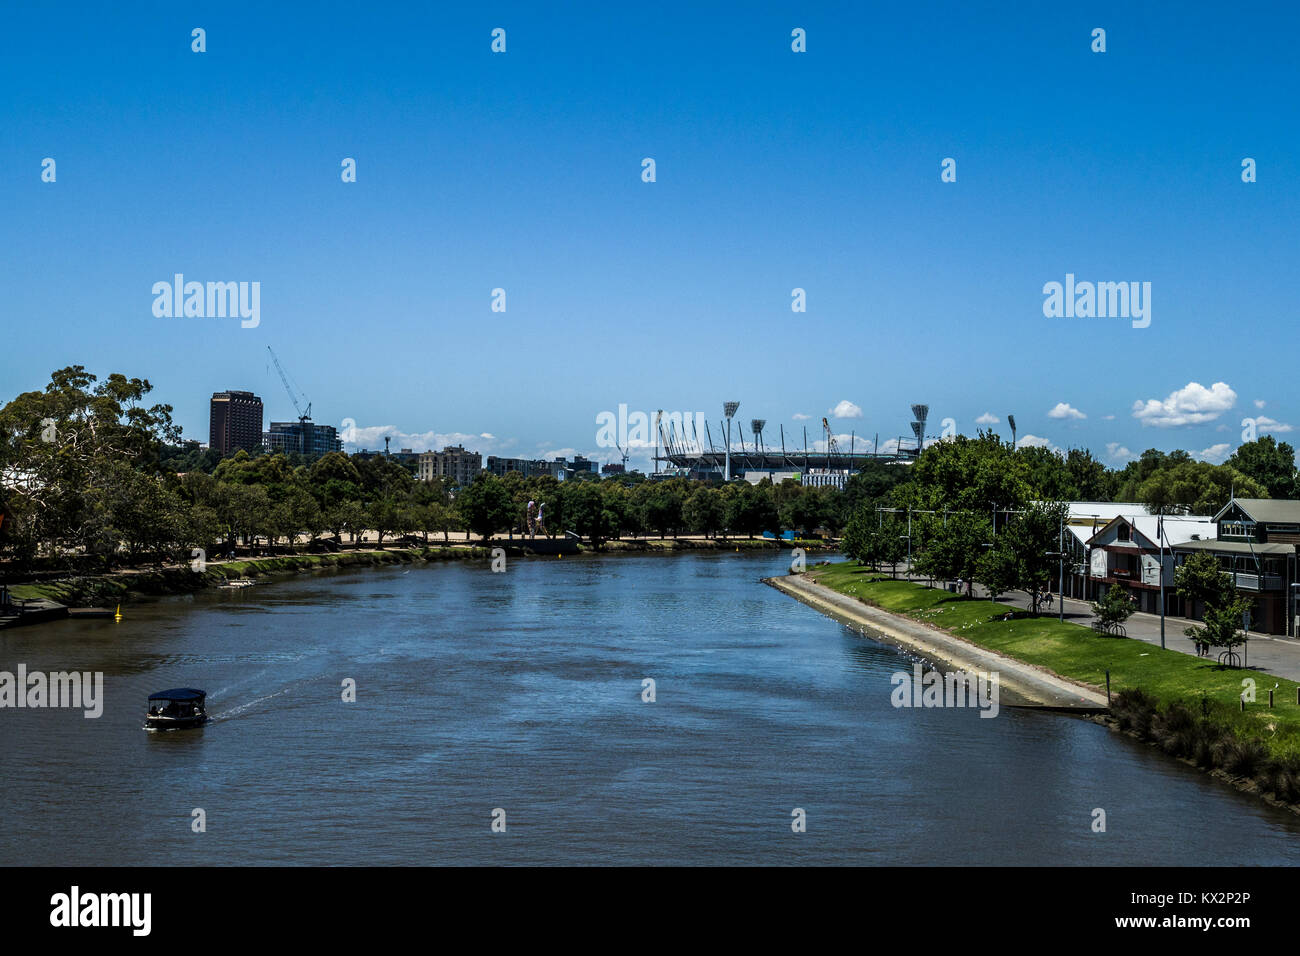 The Yarra river with the Melbourne Cricket Ground (MCG) in the distance, Melbourne, Victoria, Australia. - Stock Image